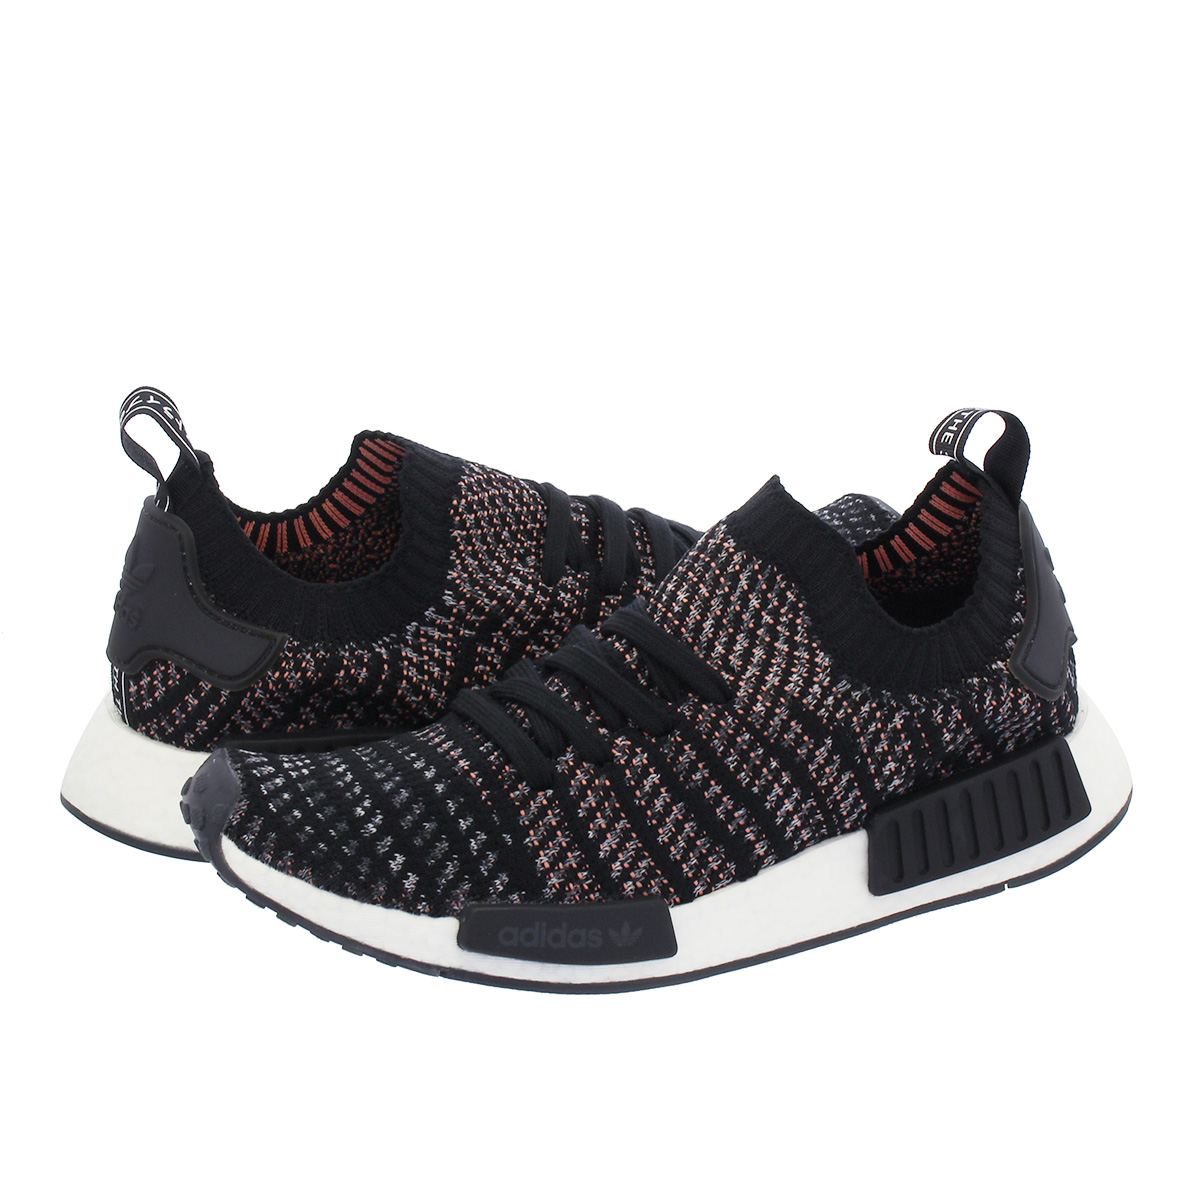 31e3cd5bc925 adidas NMD R1 STLT PK Adidas NMD R1 STLT PK CORE BLACK GREY FIVE GREY TWO  b37636